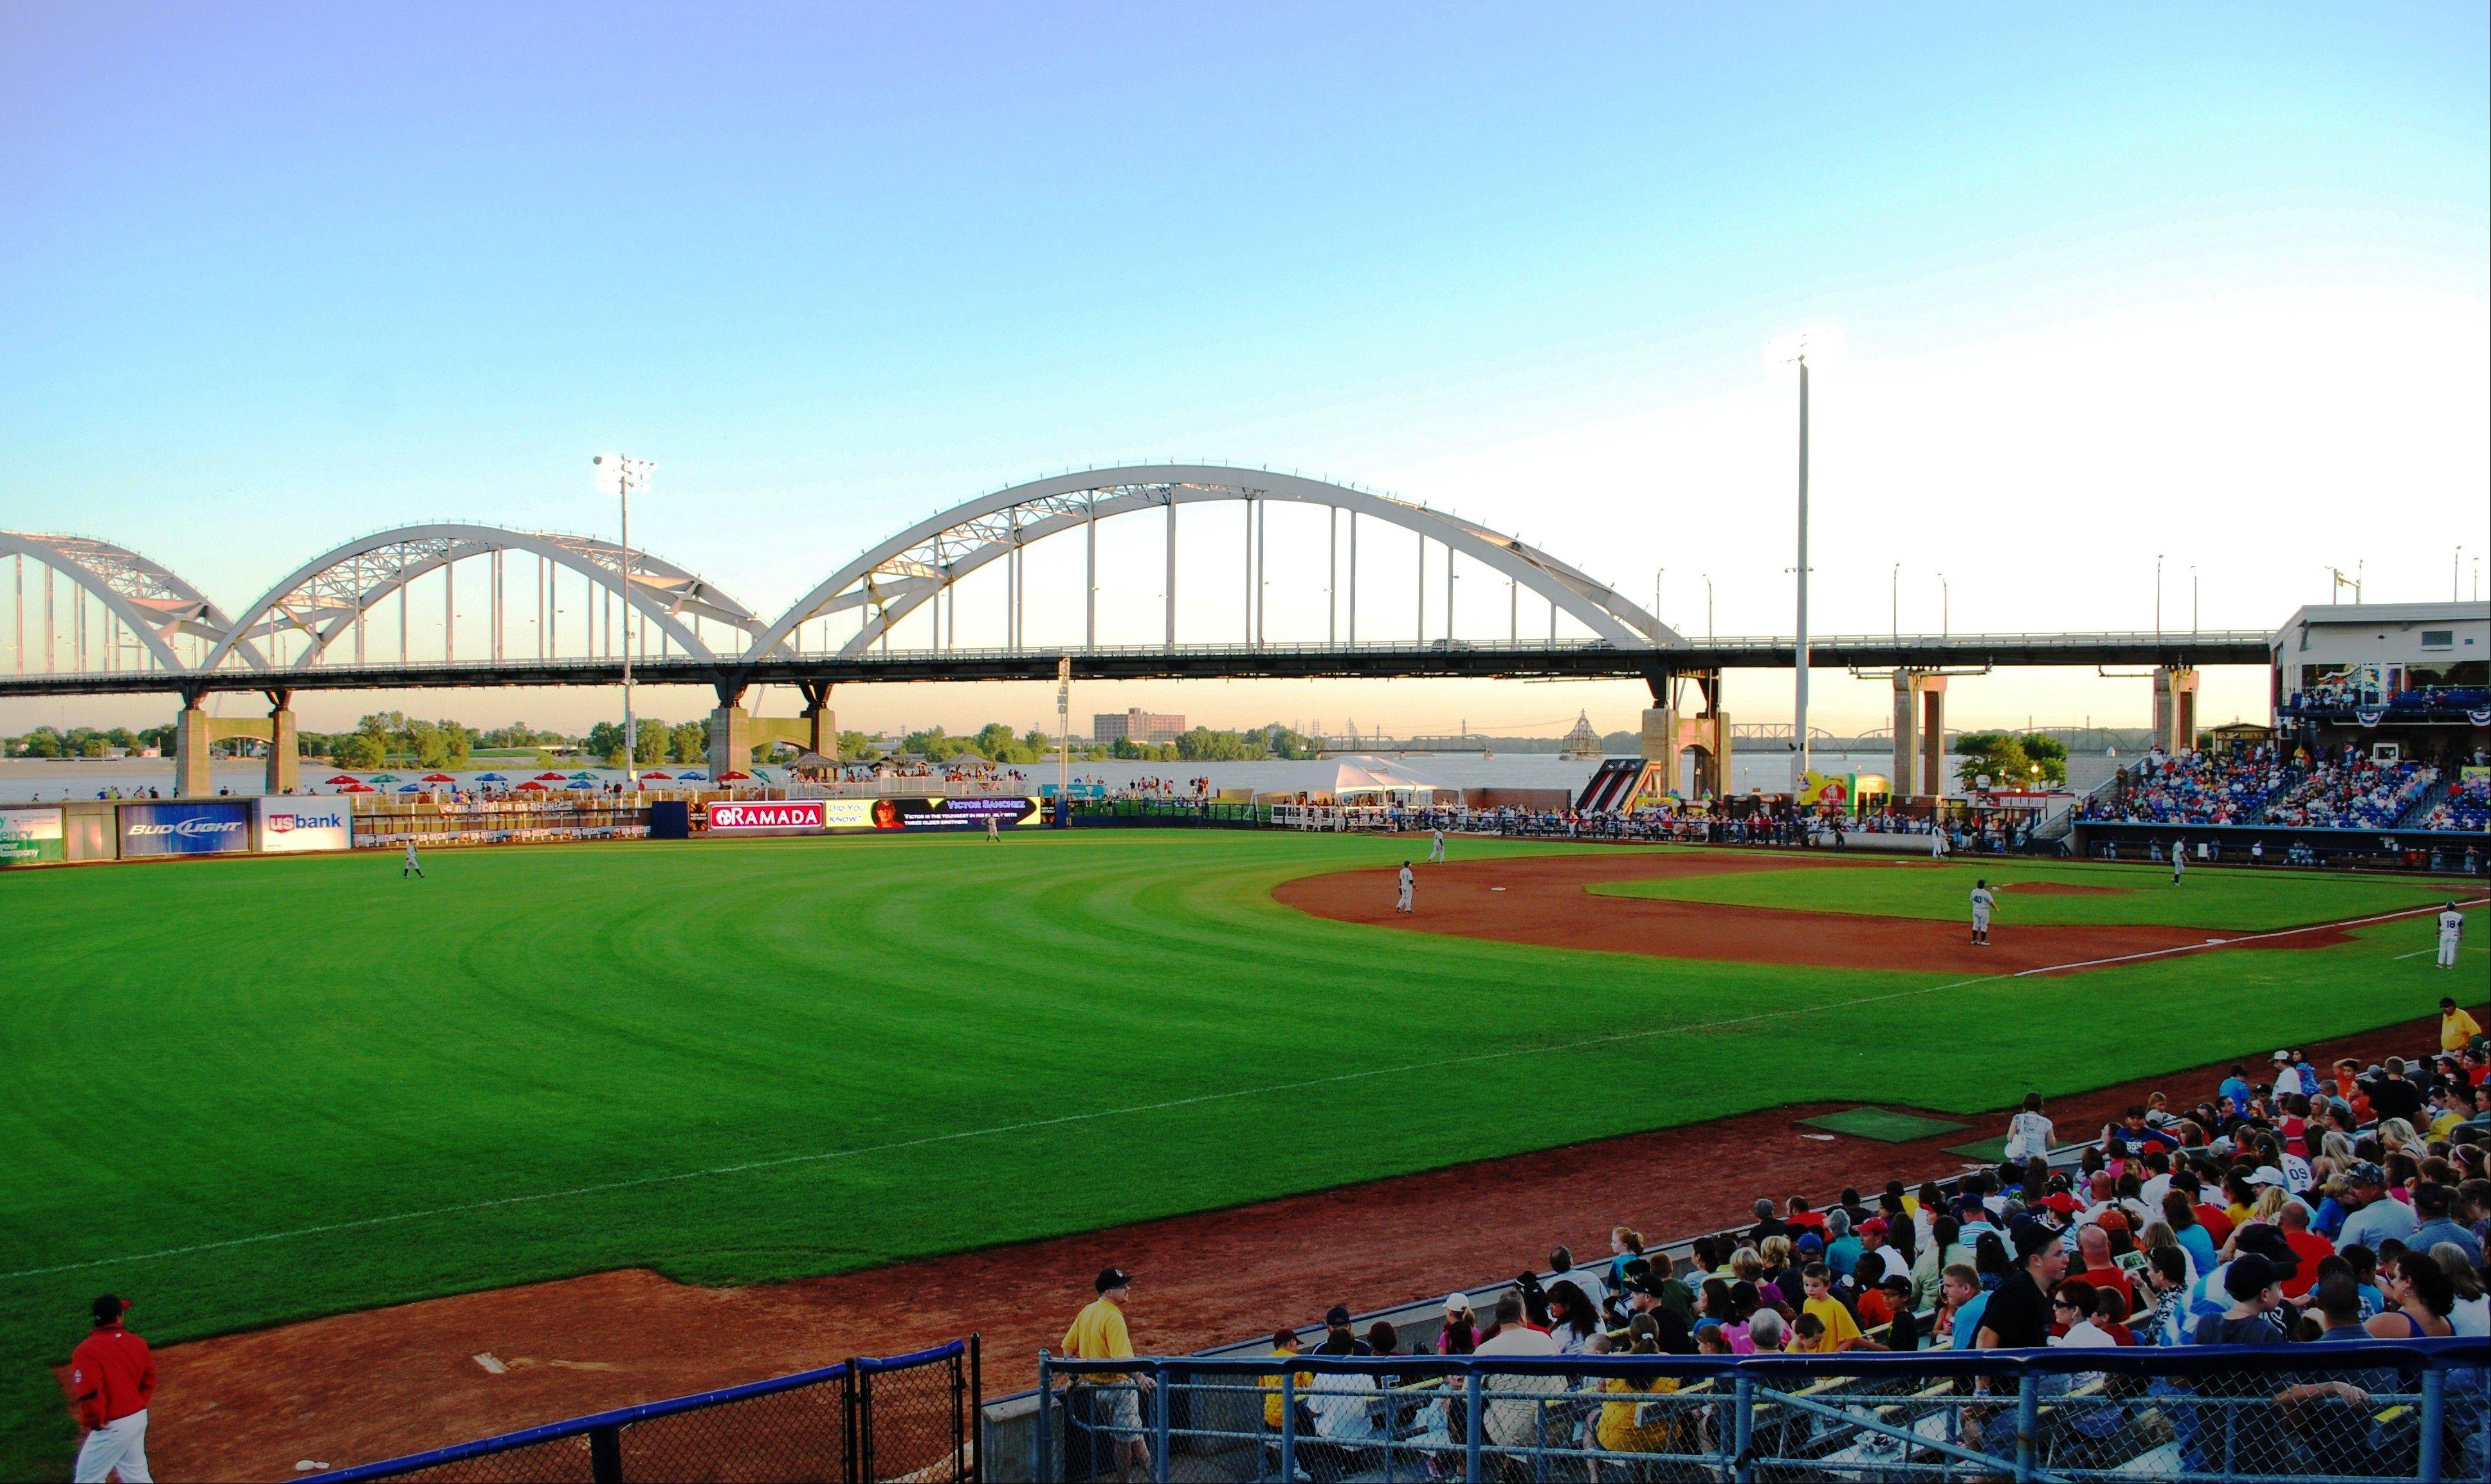 The view from inside Modern Woodmen Park in Davenport, Iowa, is ideal for both baseball and birds.